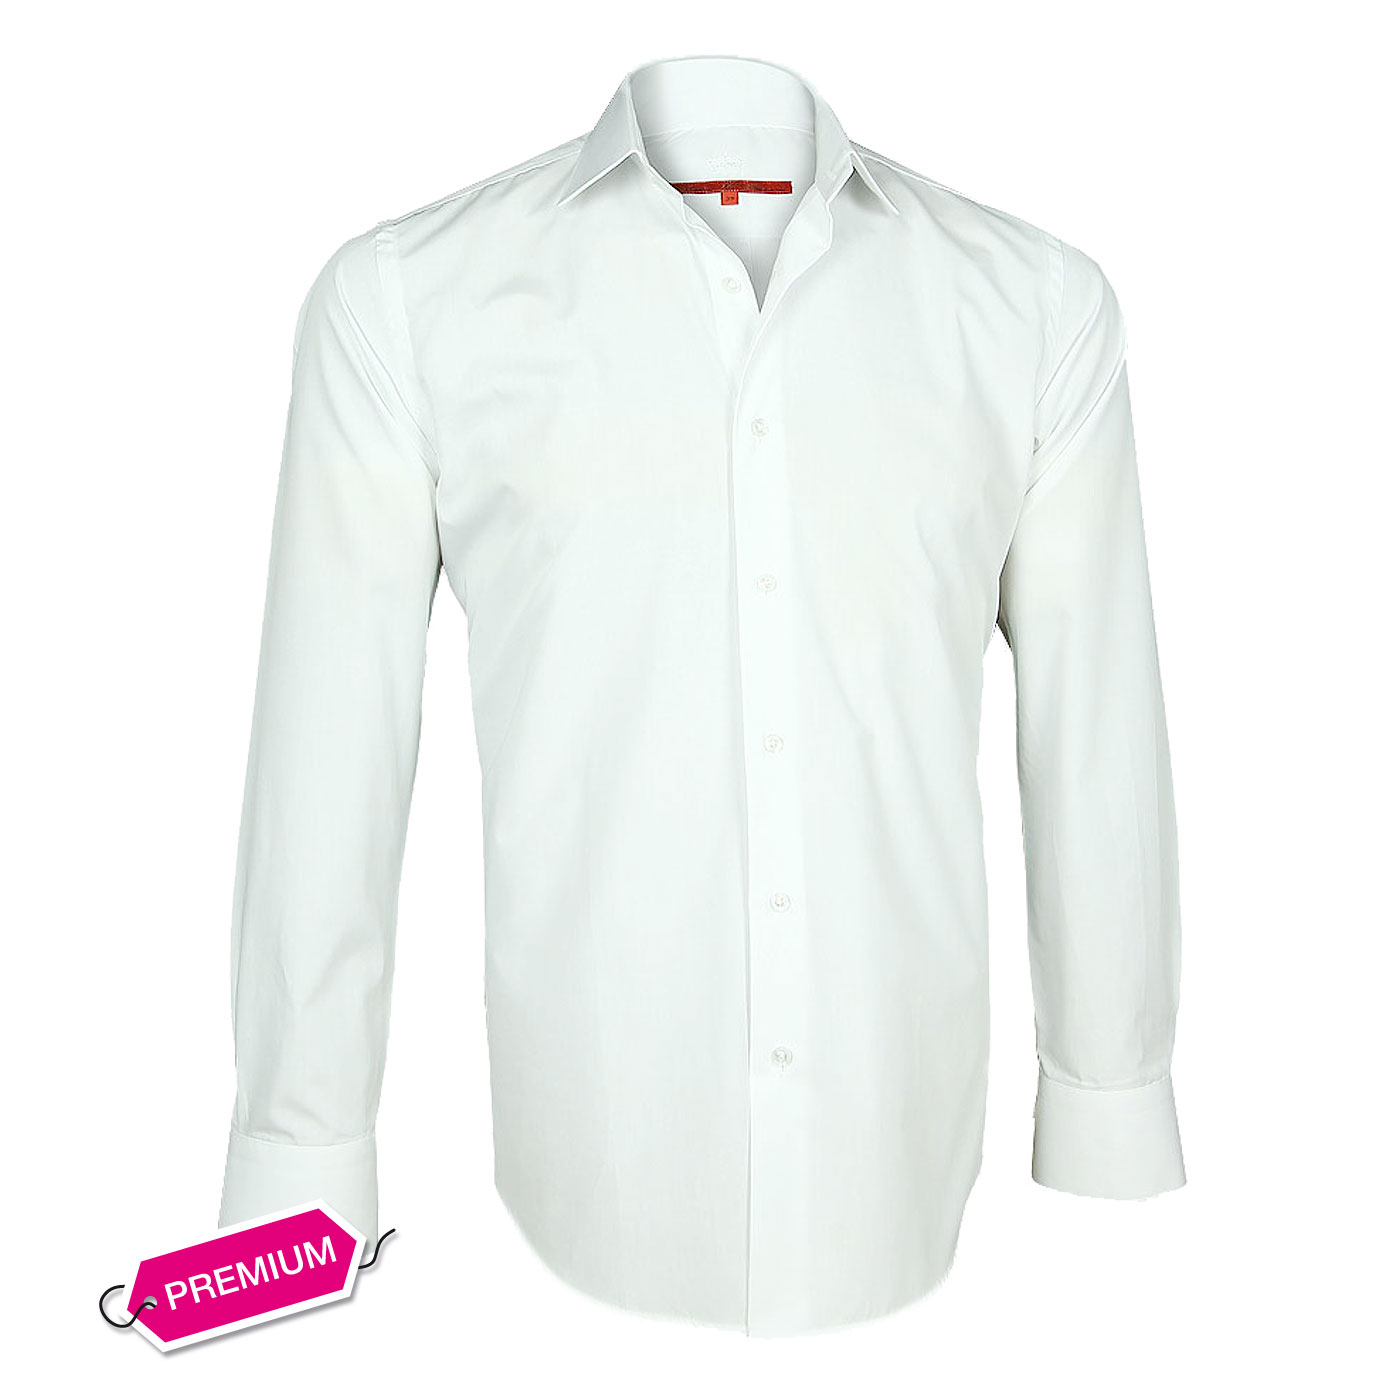 Premium Collection Premium Men's Shirt by Webmenshirts